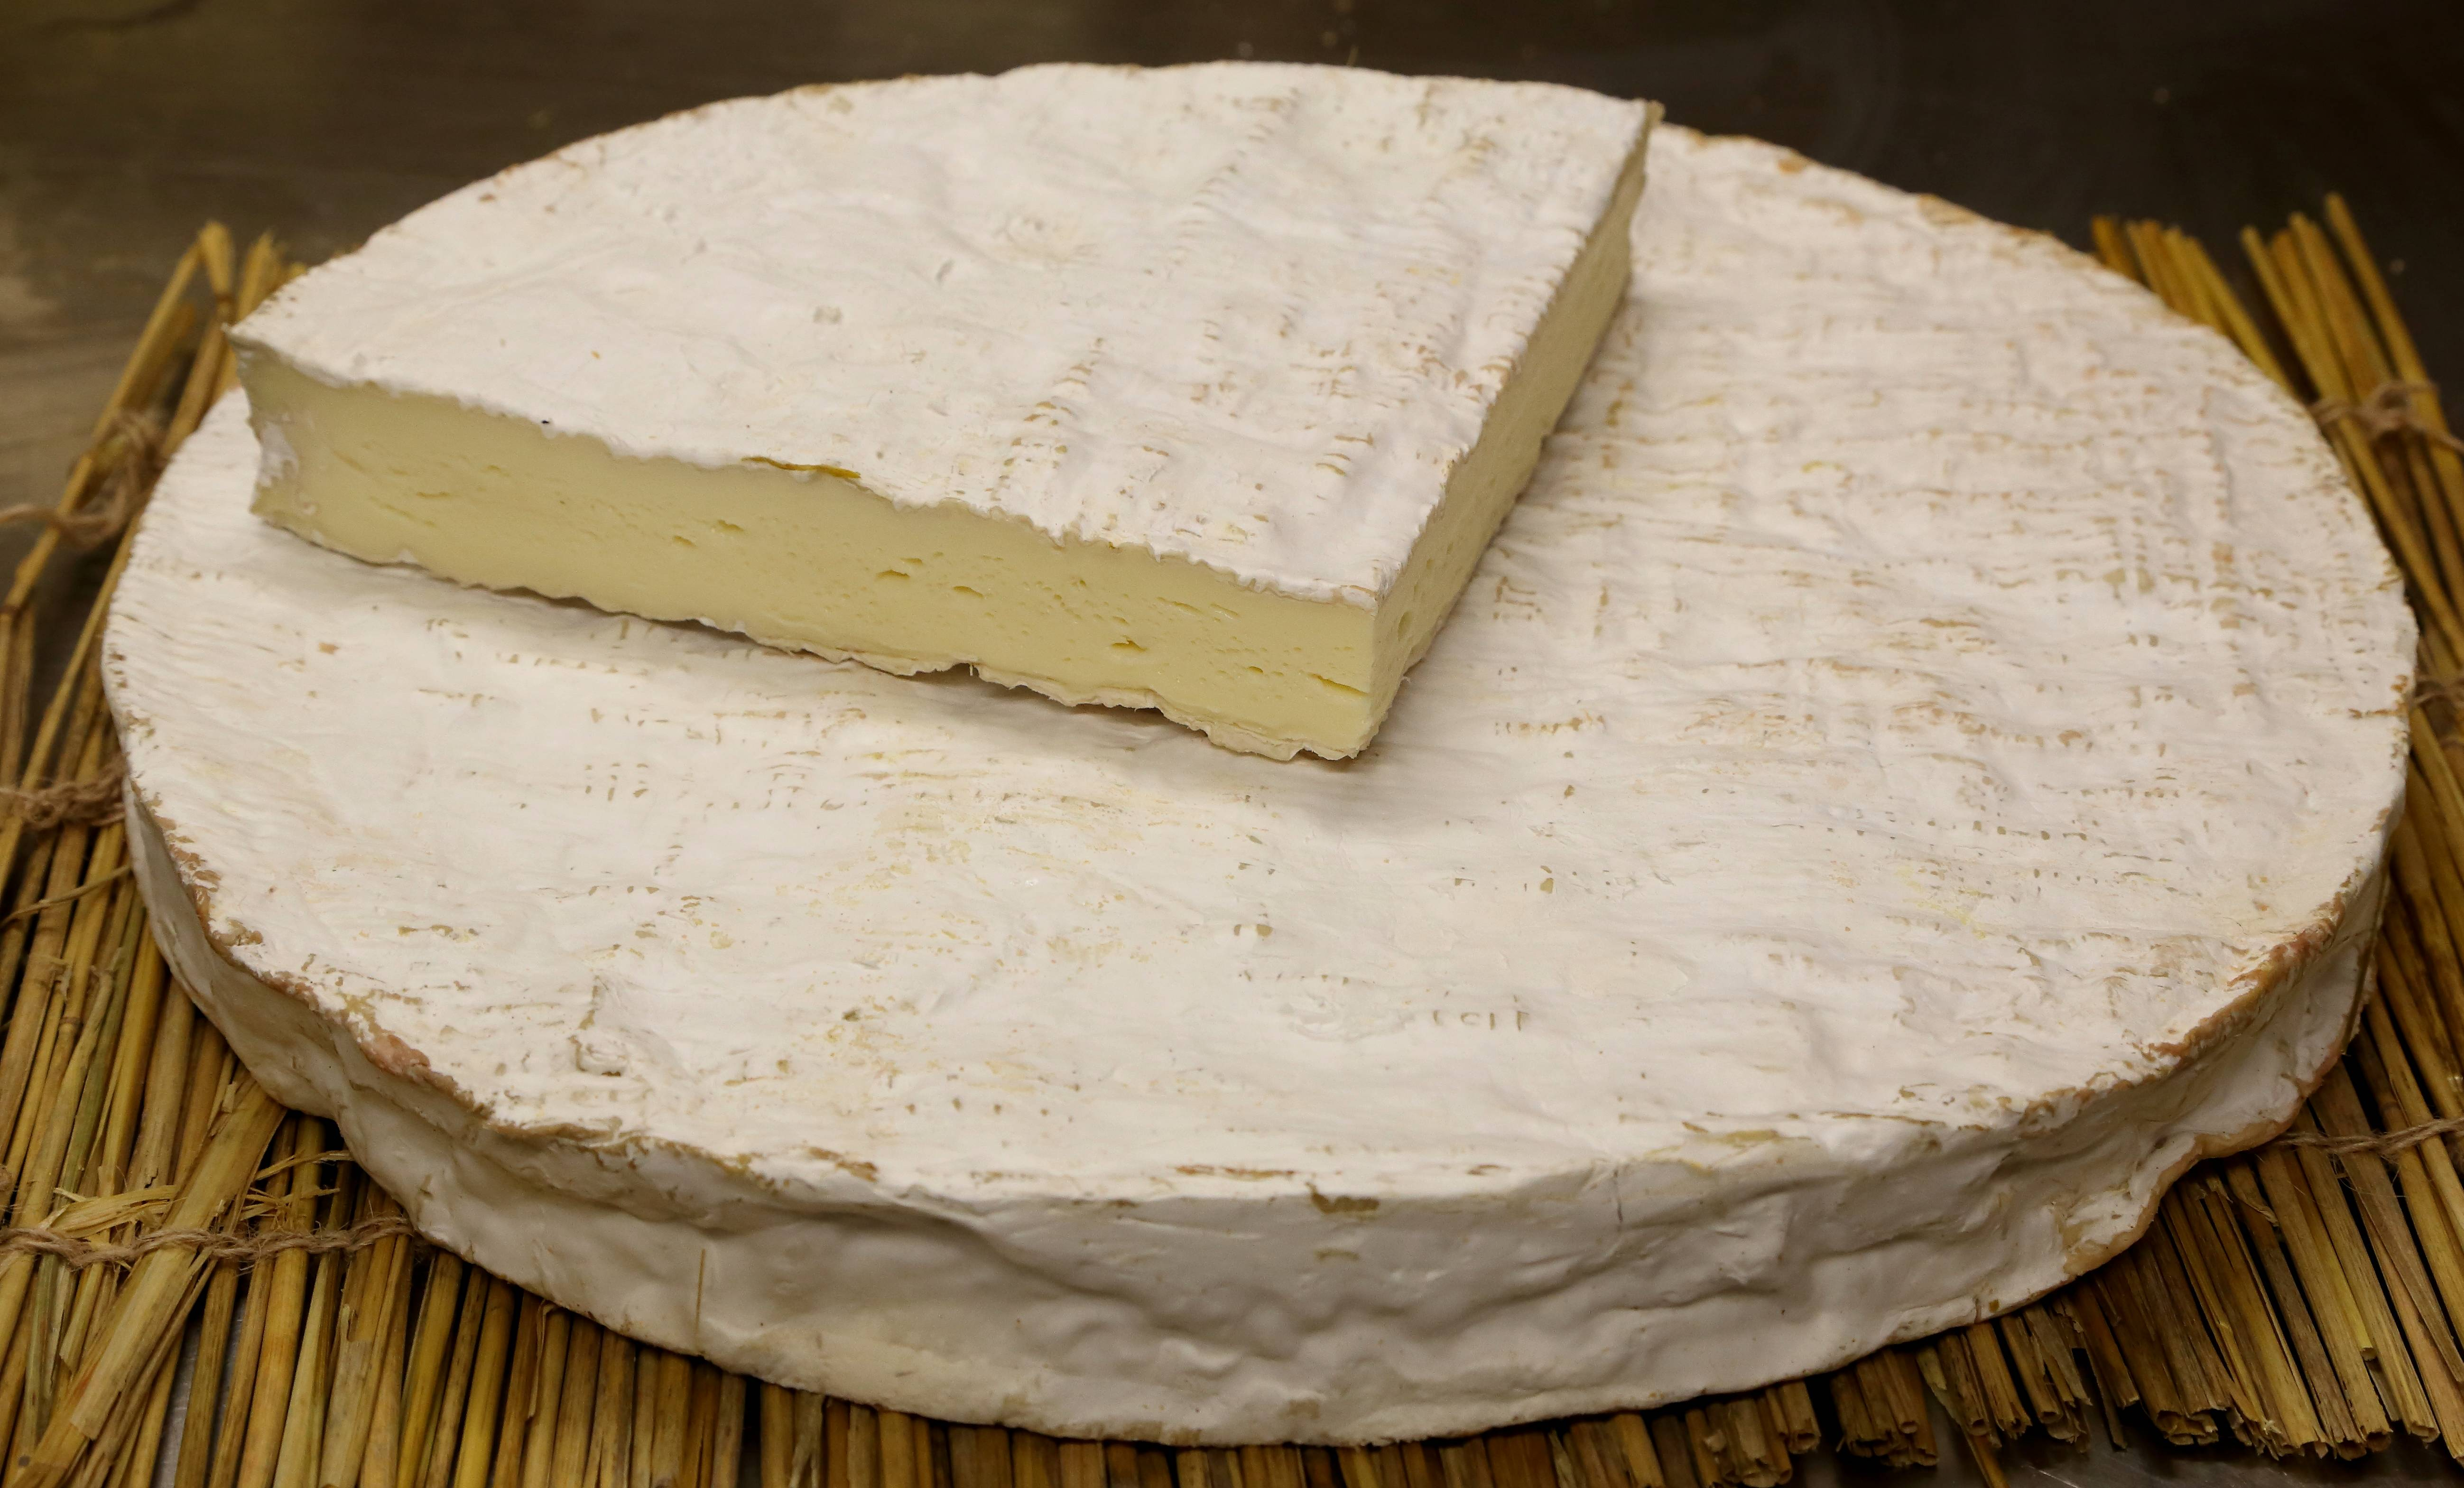 Soft and Semi-soft Cheese